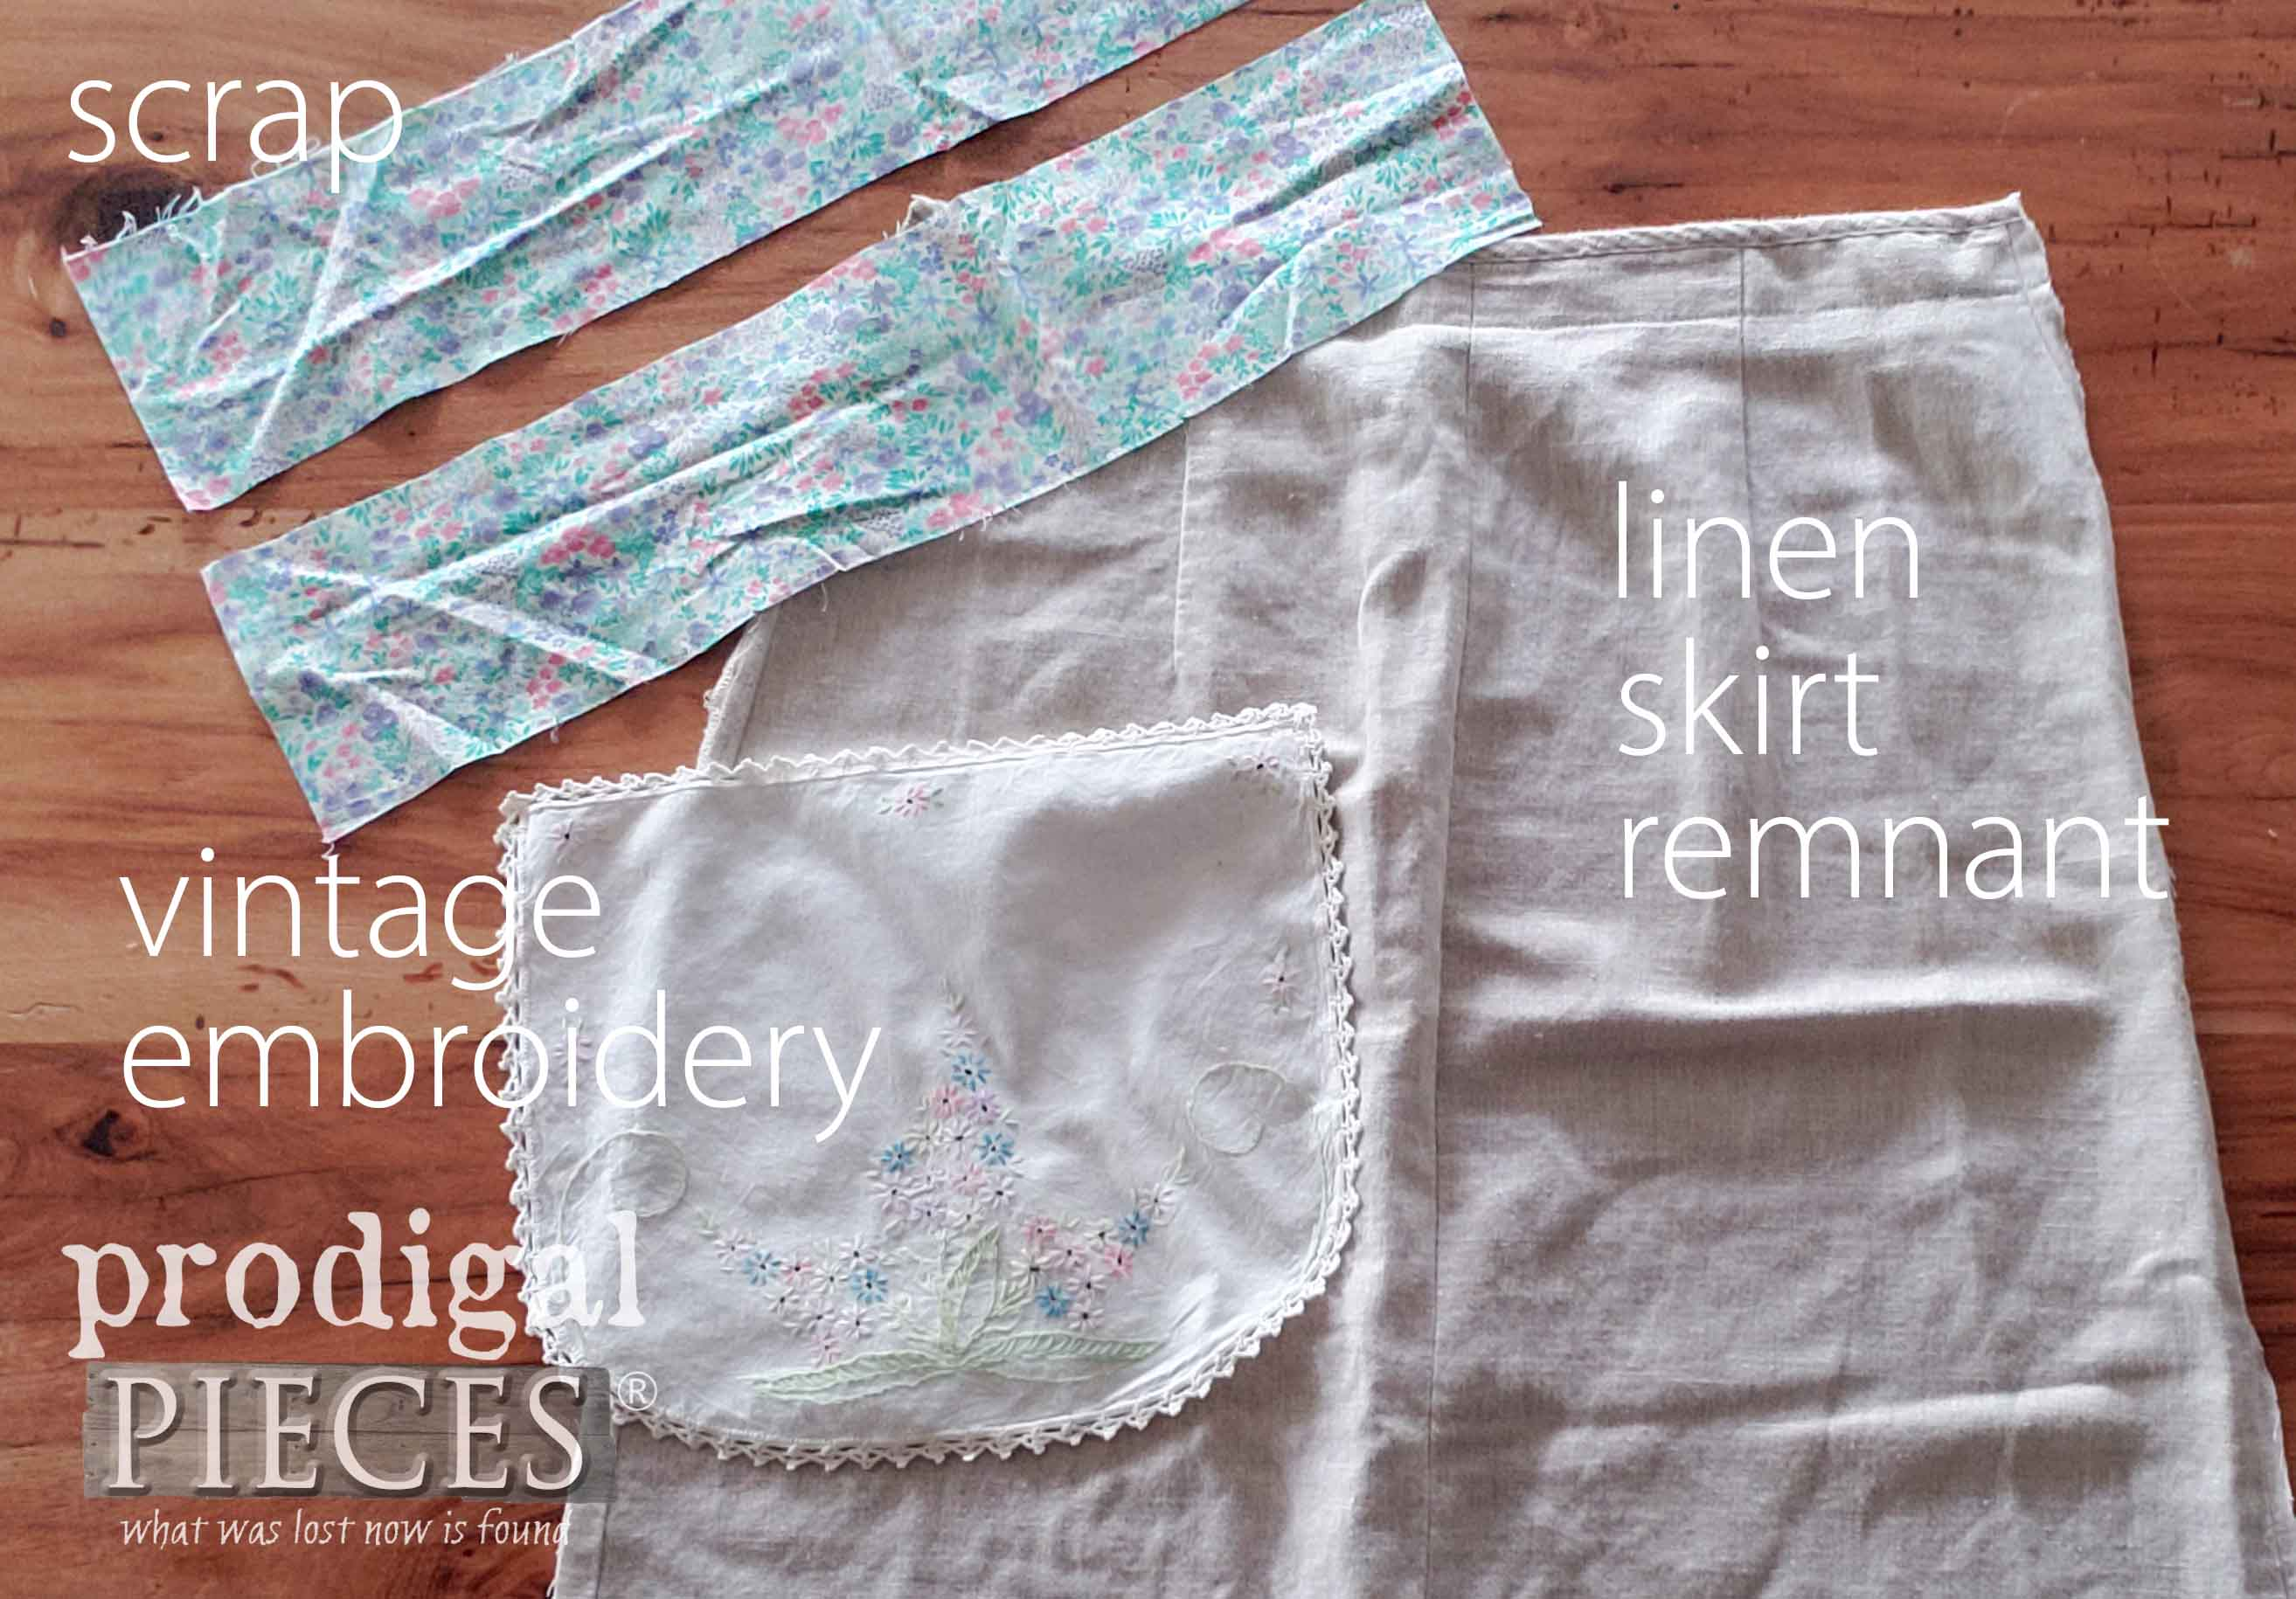 Vintage Linens Used in Creating an Adorable Child's Apron | Video Tutorial by Larissa of Prodigal Pieces | prodigalpieces.com